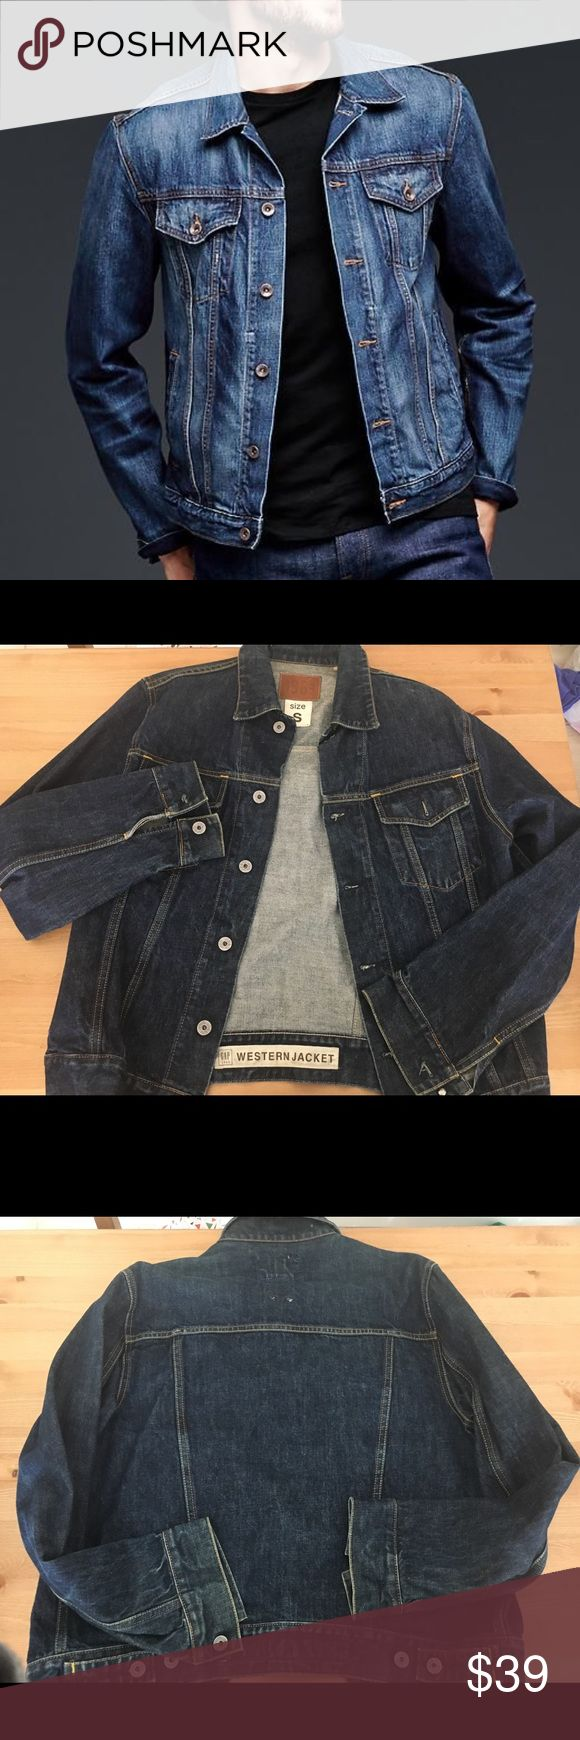 1969 Western Gap Jacket Men's pre owned denim jacket  Arms length:25 1/2  No rips or Stains GAP Jackets & Coats Bomber & Varsity